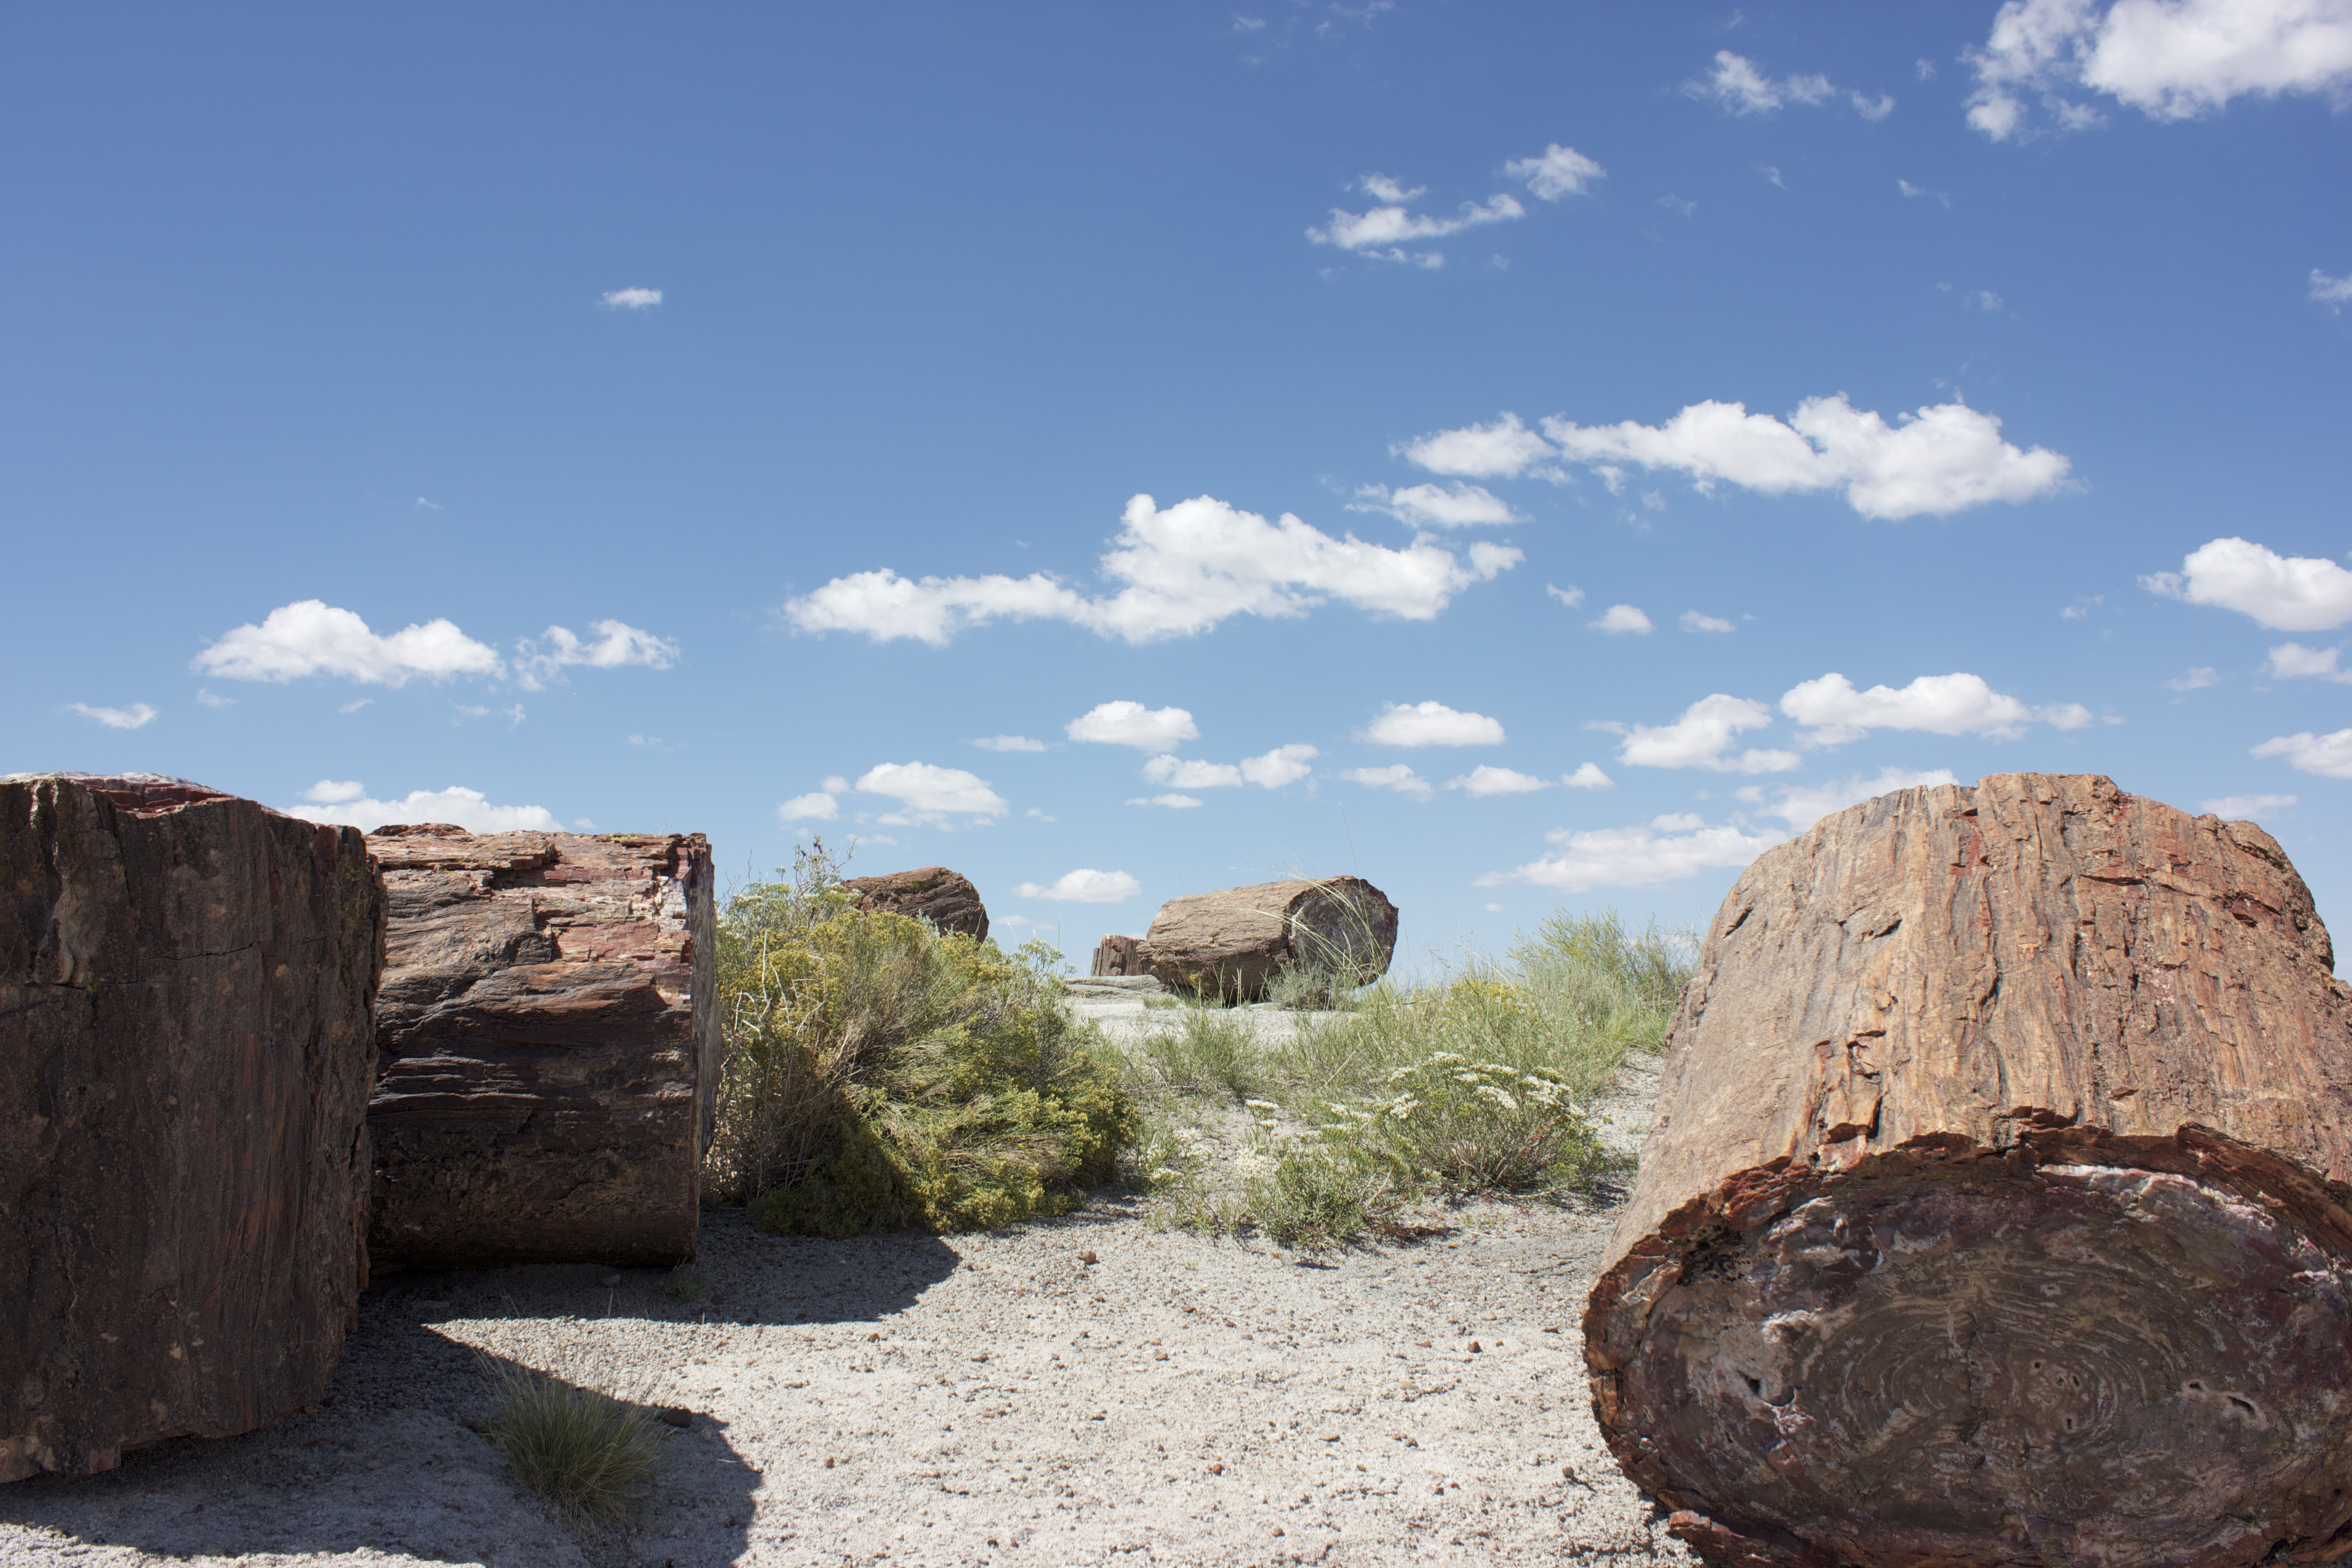 Petrified logs against a cloudy blue sky.